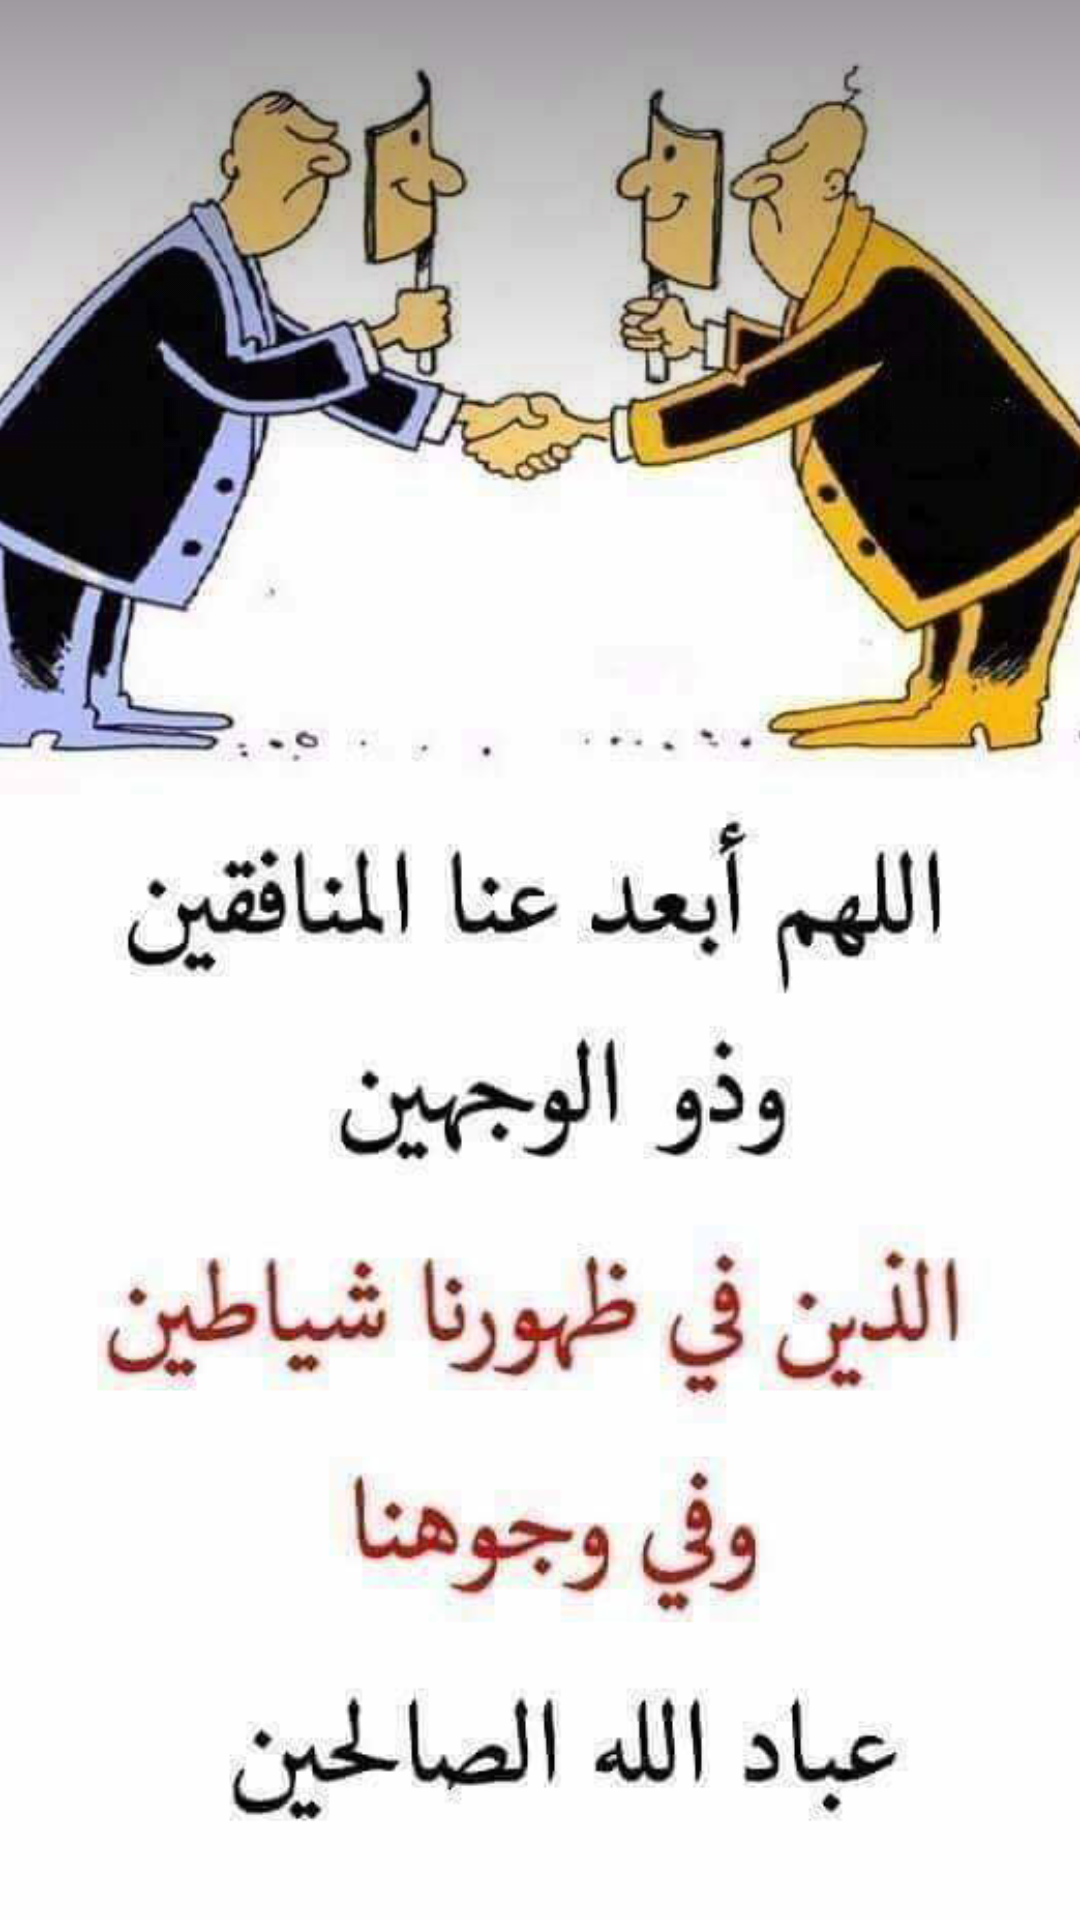 Pin By I Love You Iskander On Praise Allah ذكر الله Fictional Characters Disney Characters Character